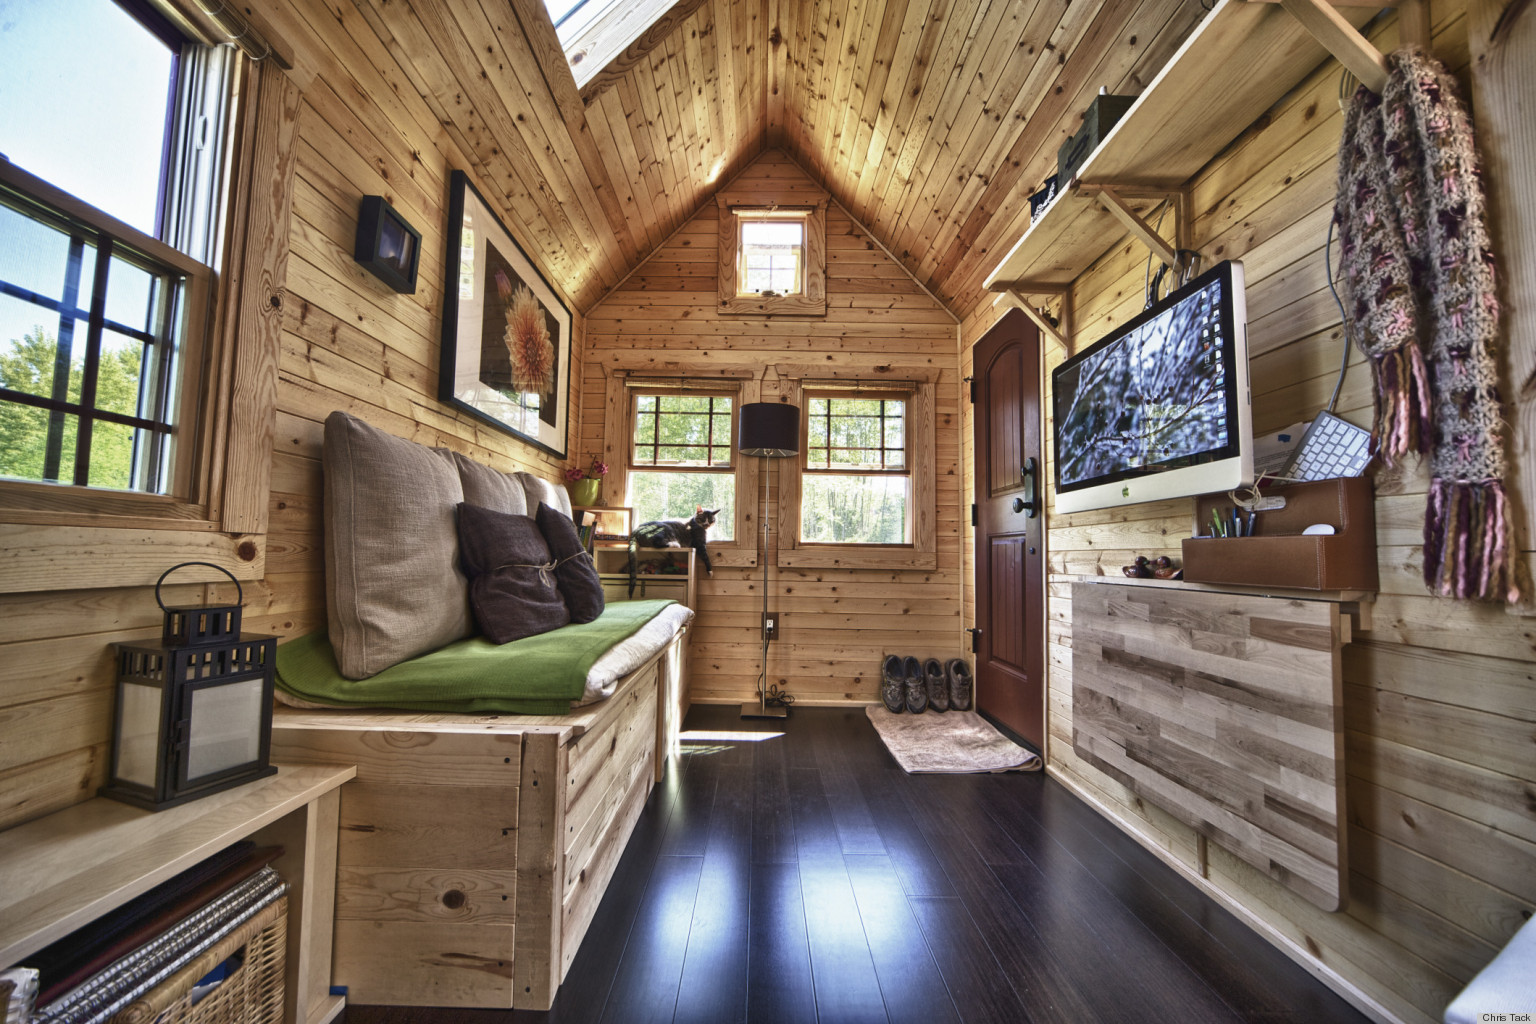 chris and malissa tack 39 s tiny home transformed this high tech couple into simple living converts. Black Bedroom Furniture Sets. Home Design Ideas